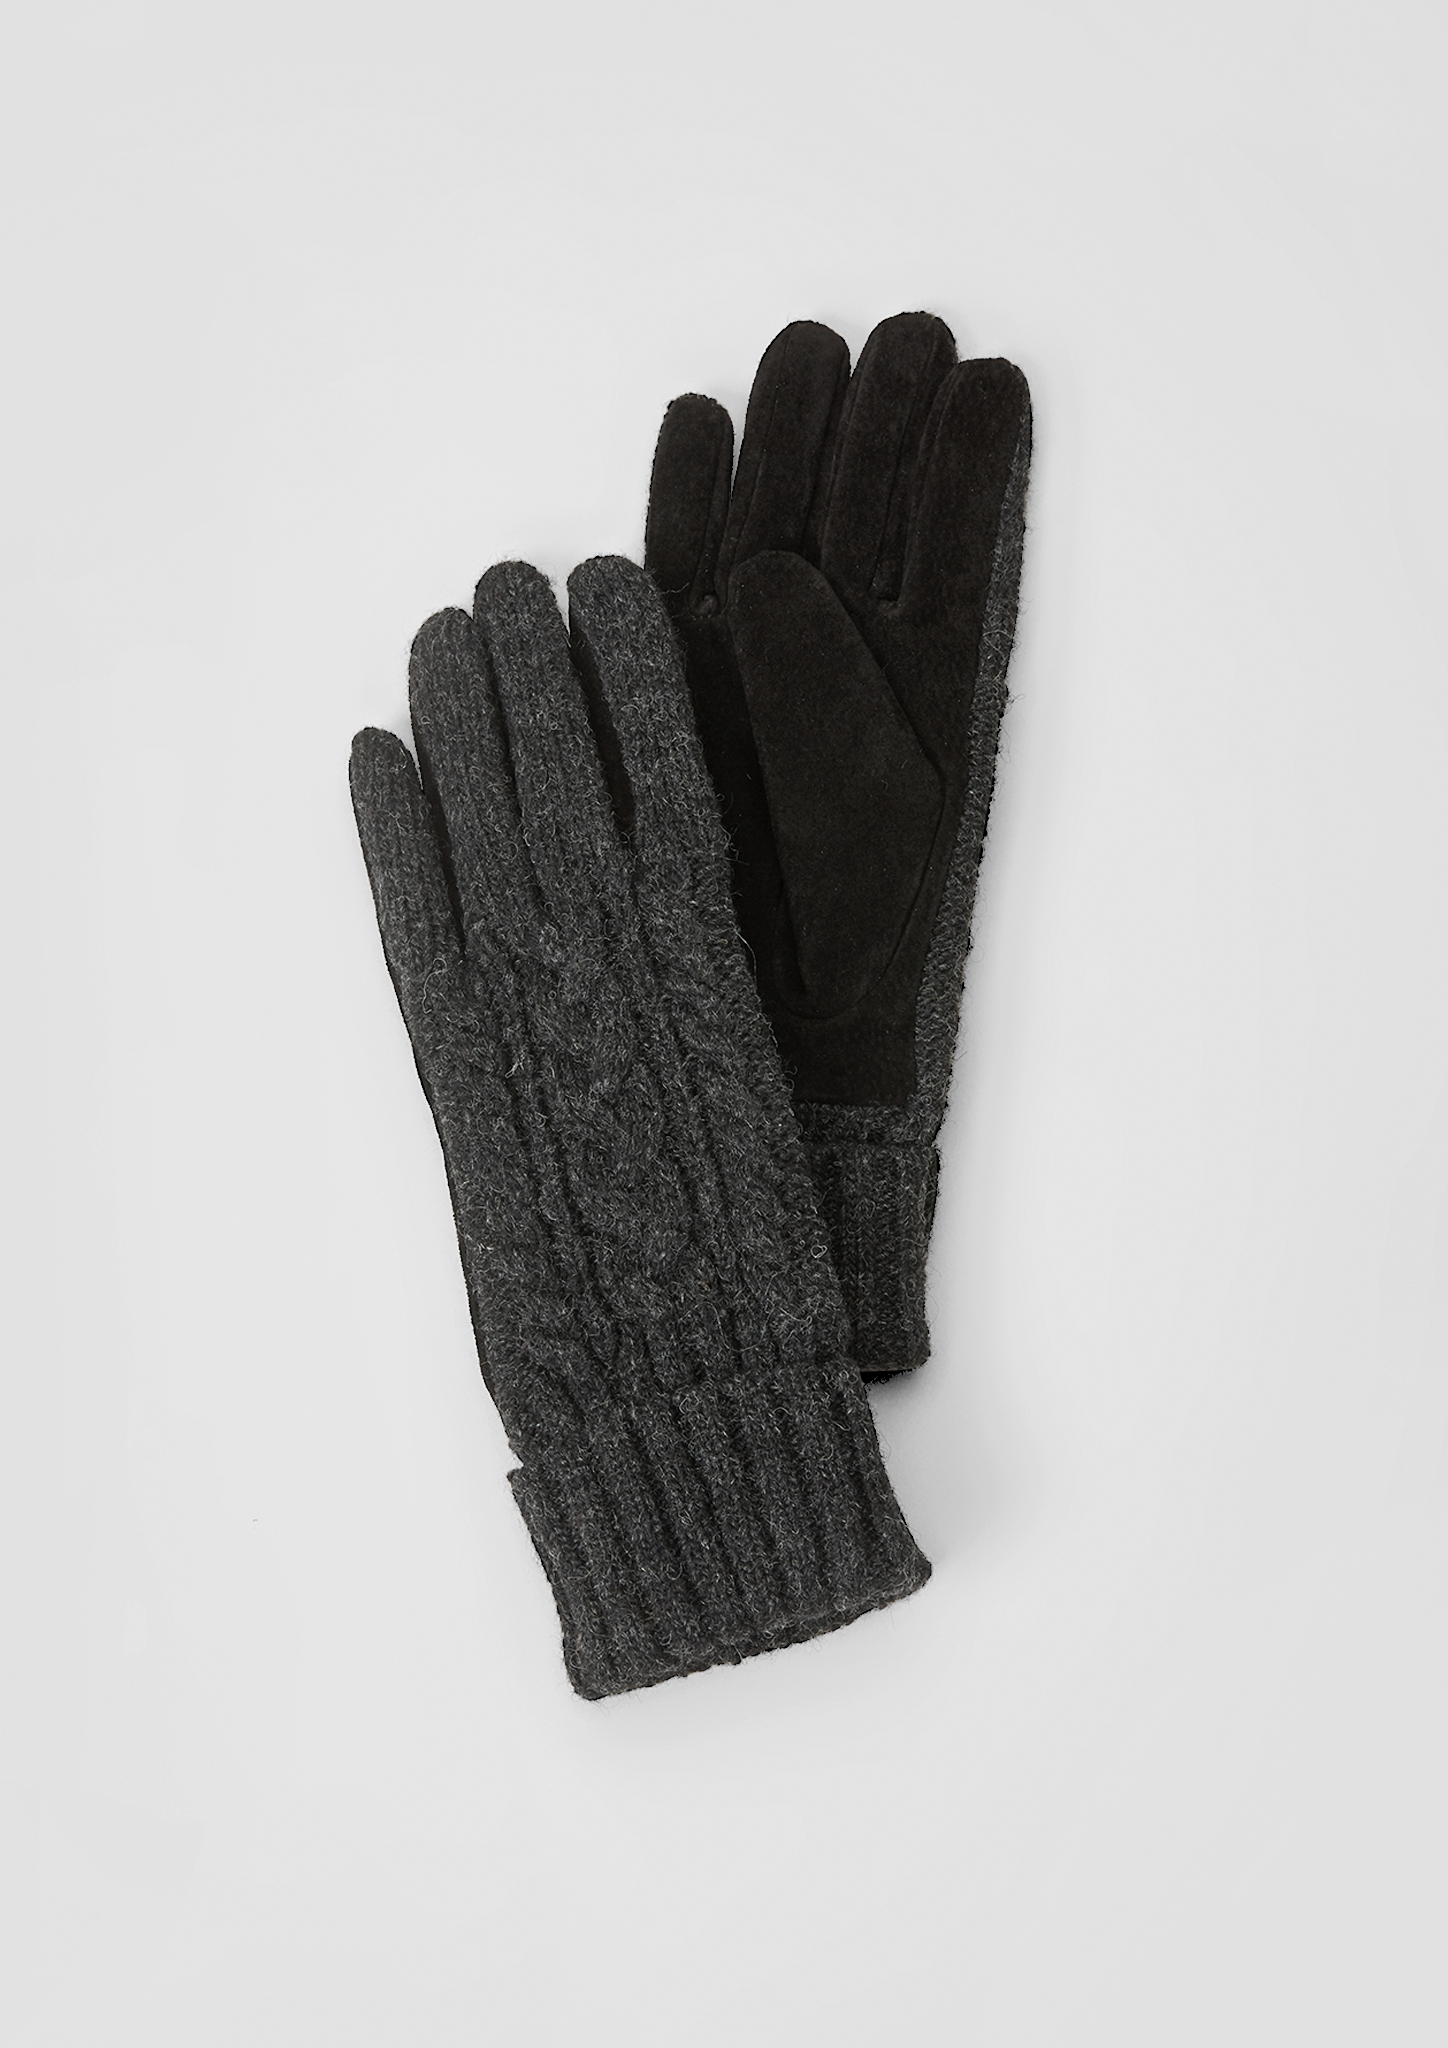 Wollhandschuhe | Accessoires > Handschuhe > Wollhandschuhe | Grau | Obermaterial a 70% wolle -  30% polyamid| obermaterial b 100% leder| futter 100% polyester | s.Oliver